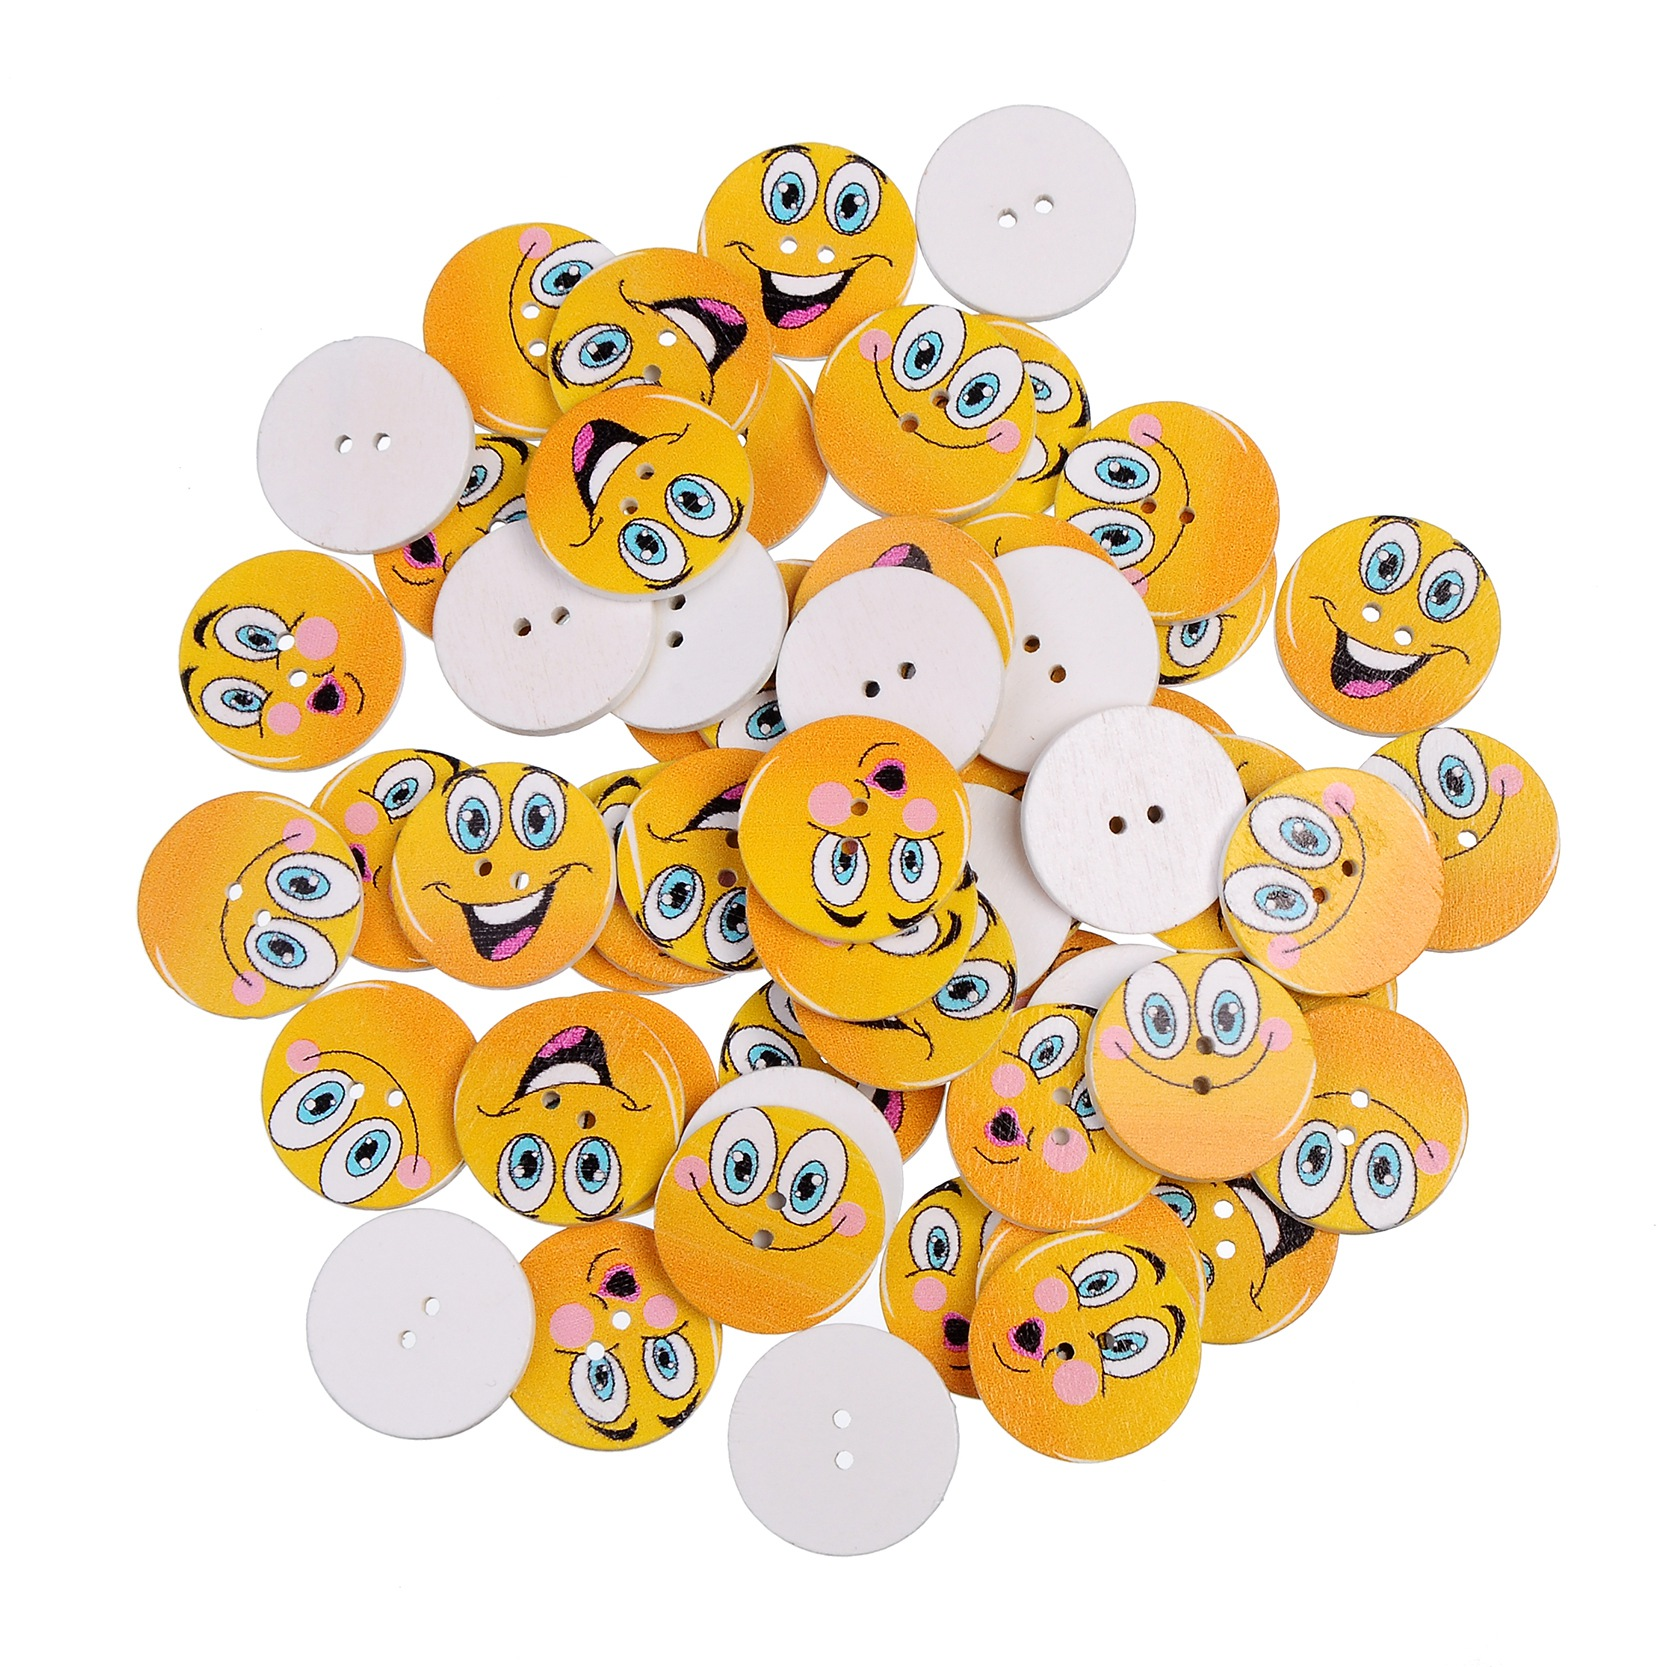 Visages Tige Boutons Taille 25 mm